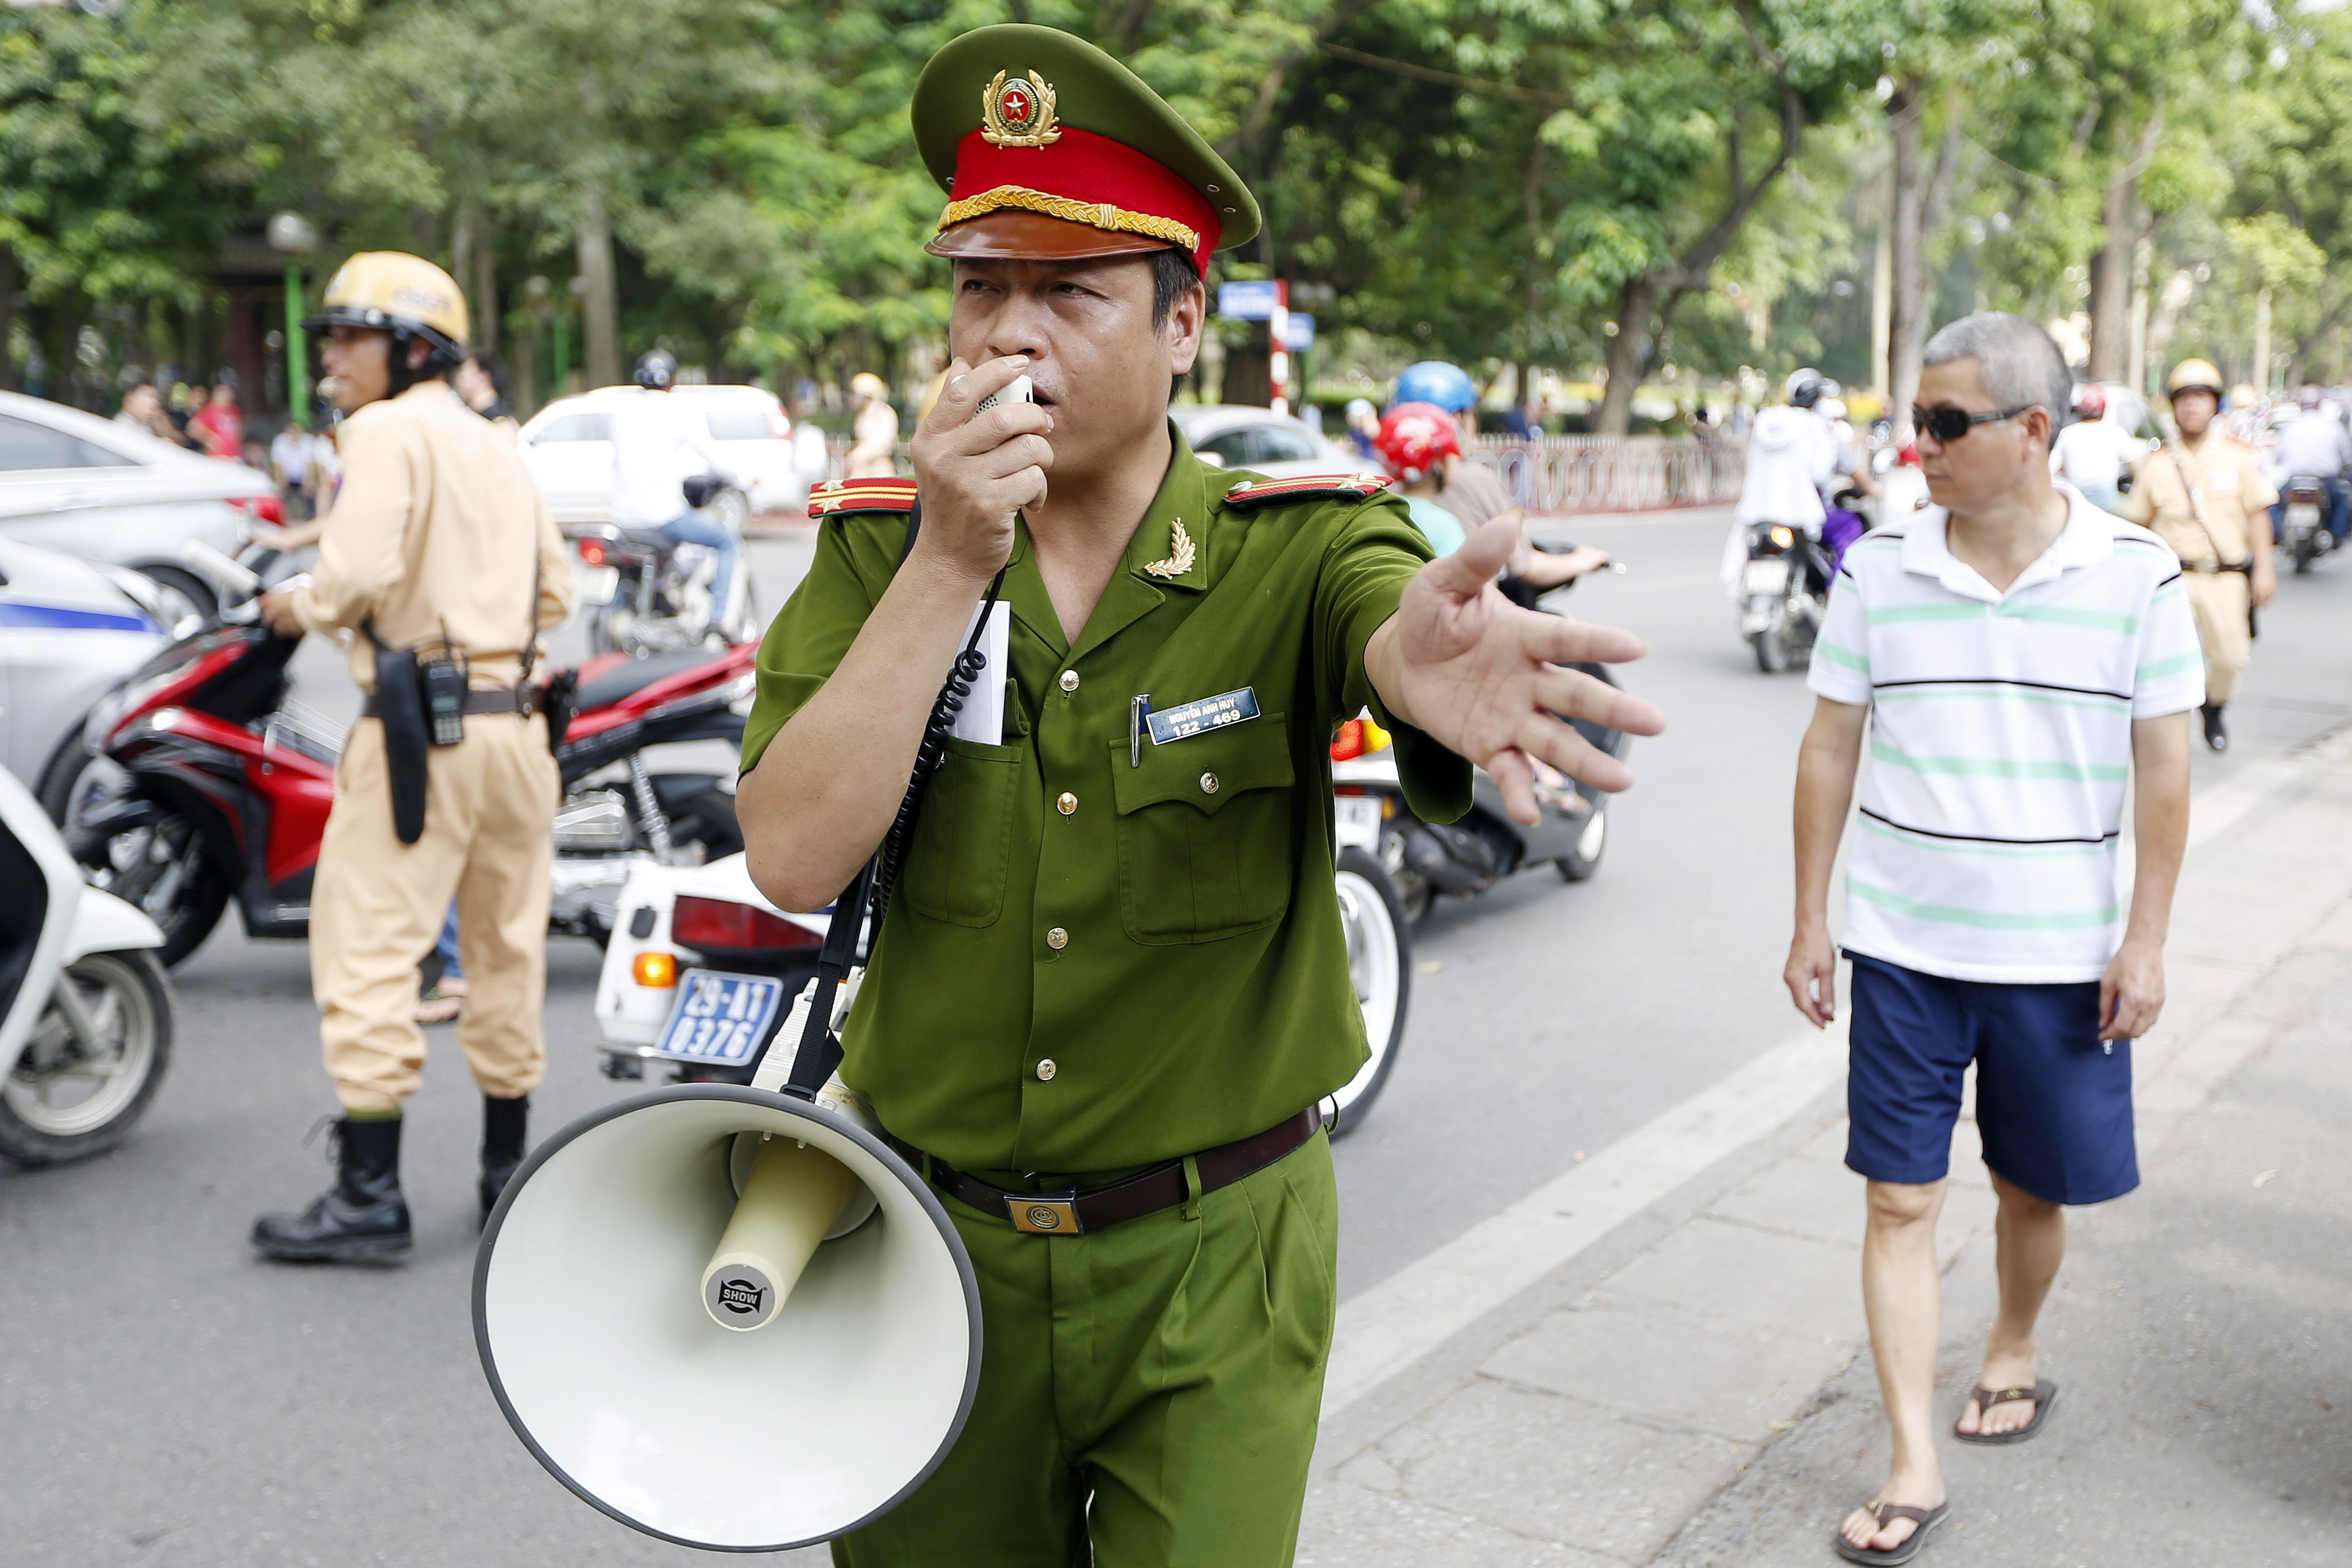 epa04211785 Policemen try to disperse people protesting near the Embassy of China, in Hanoi, Vietnam, 18 May 2014. Vietnam accused Chinese boats of repeatedly ramming Vietnamese vessels near disputed waters in the South China Sea where China has placed an oil drilling platform near the Paracel Islands. The dispute over the oil rig shows no sign of abating. Vietnam said China has increased the number of vessels at the area to 130 vessels, including four navy ships. EPA/LUONG THAI LINH